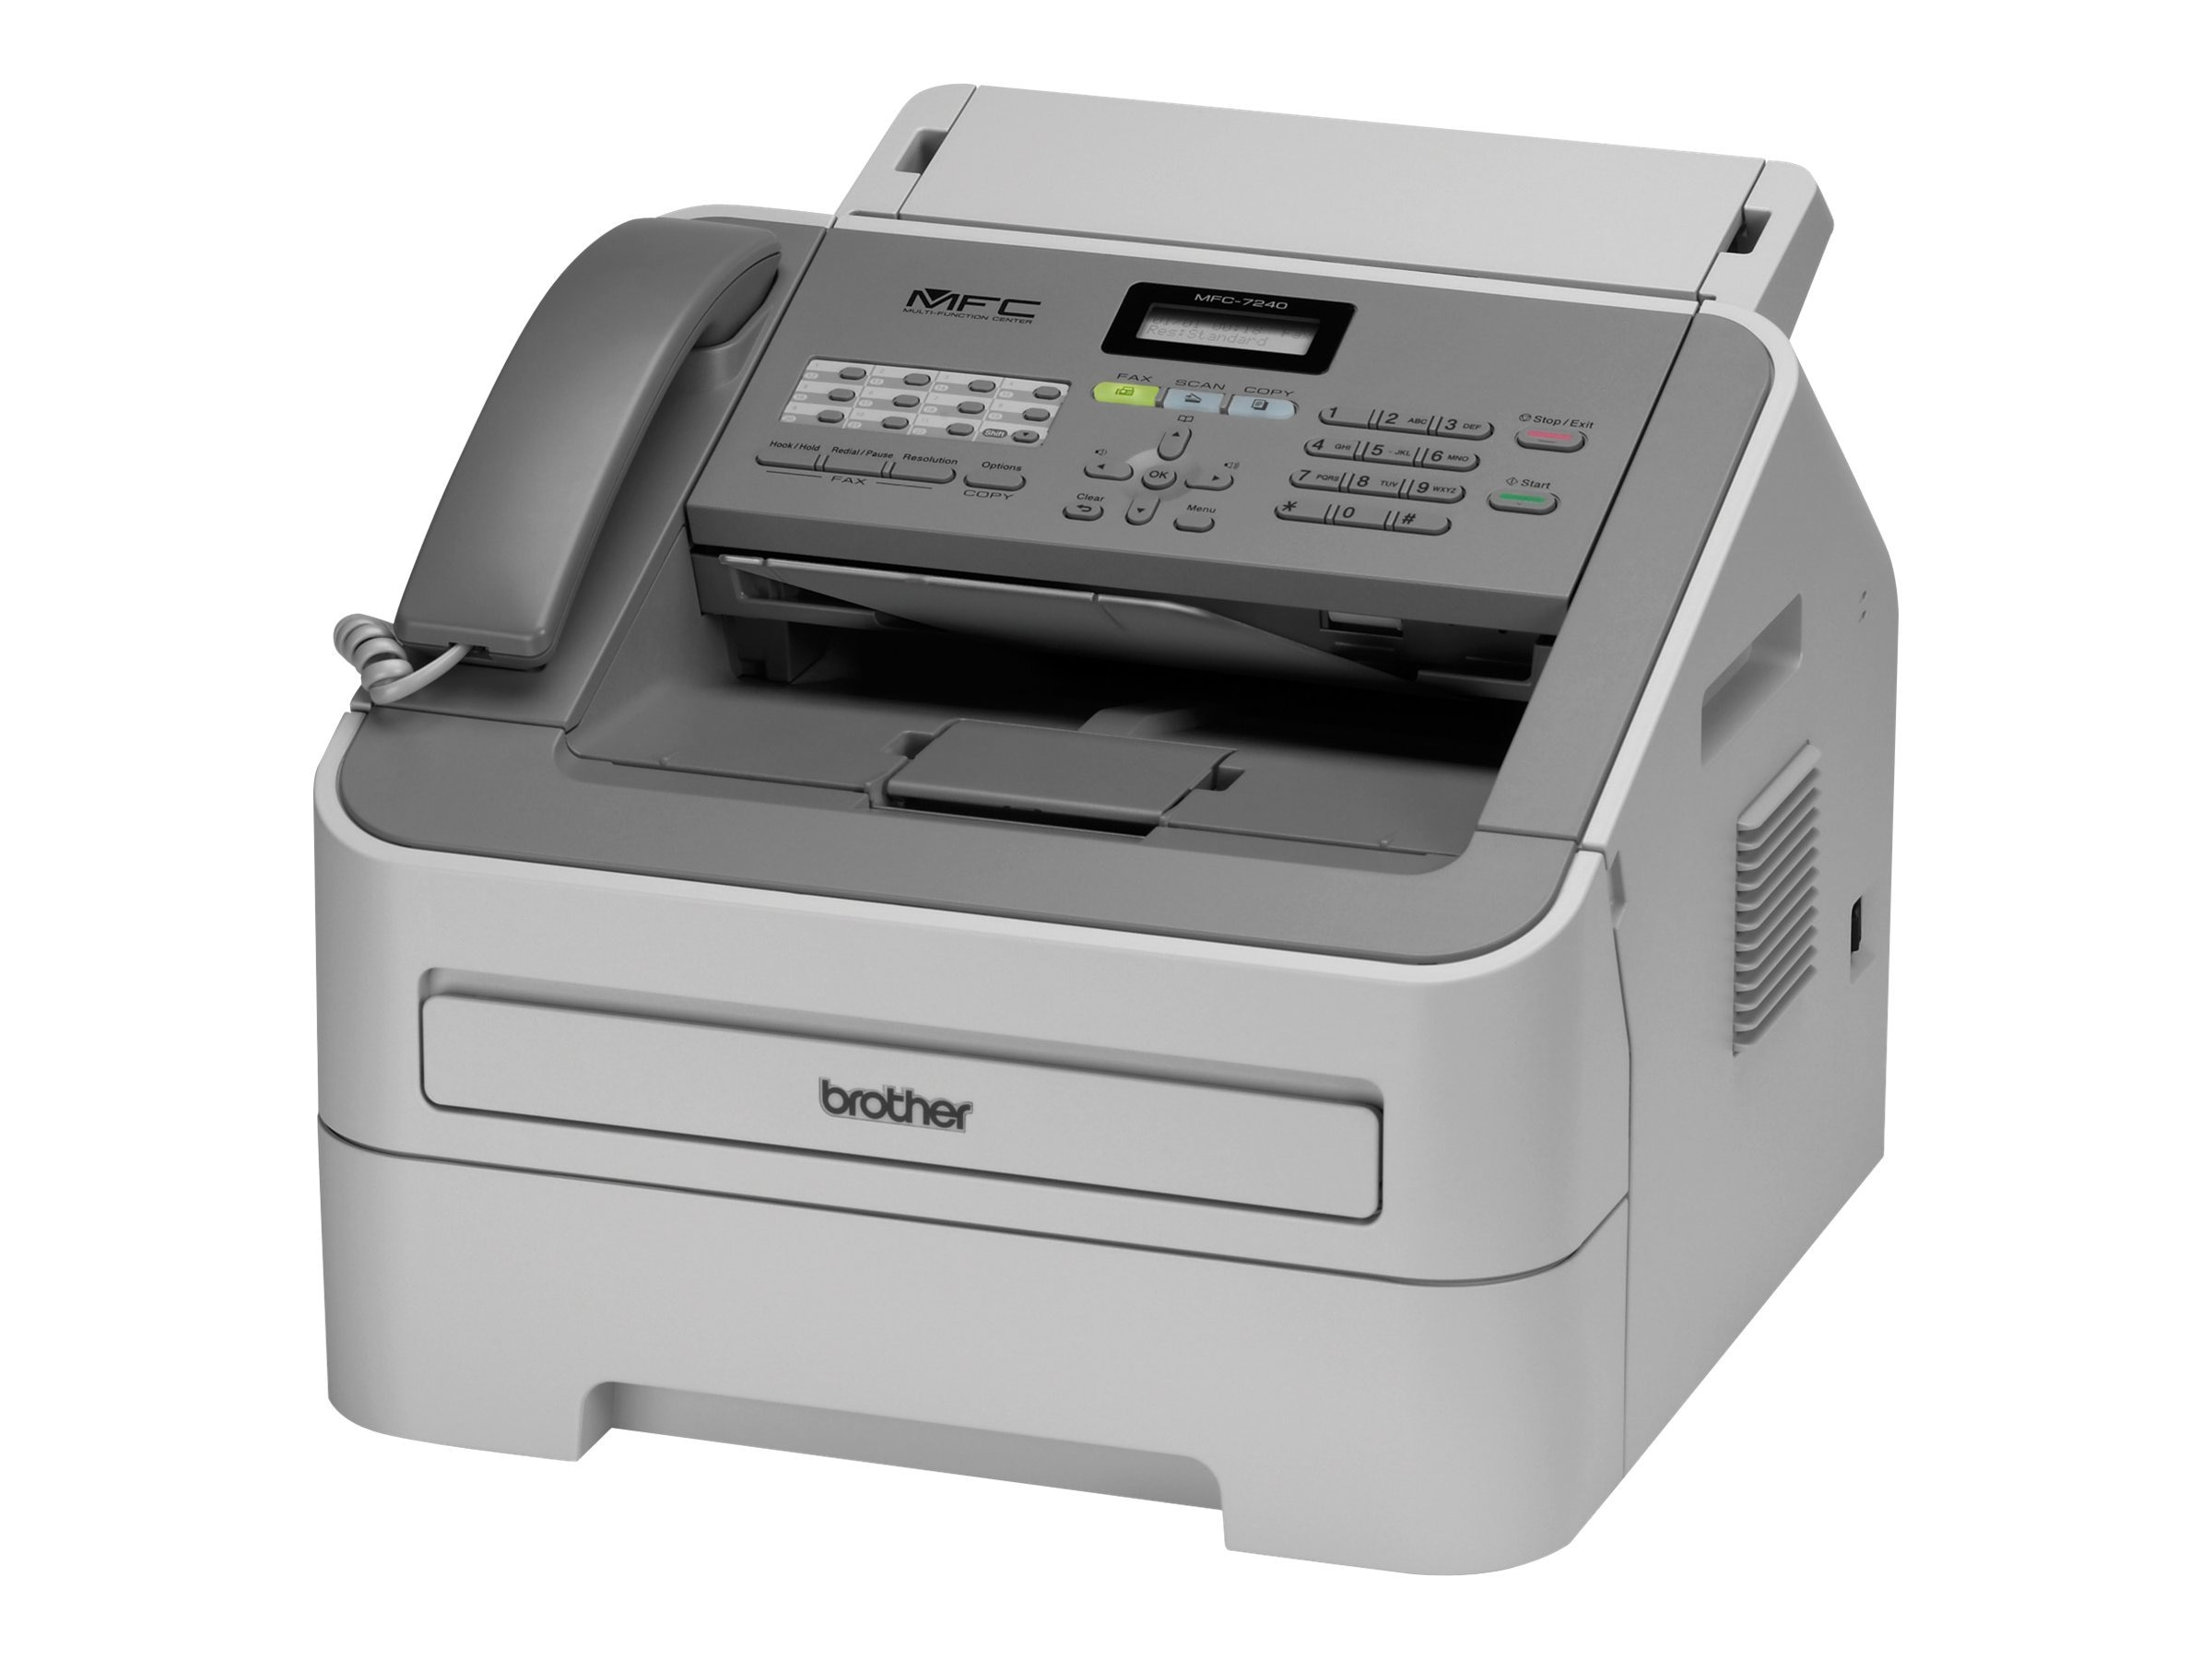 Brother MFC-7240 Compact Laser All-In-One